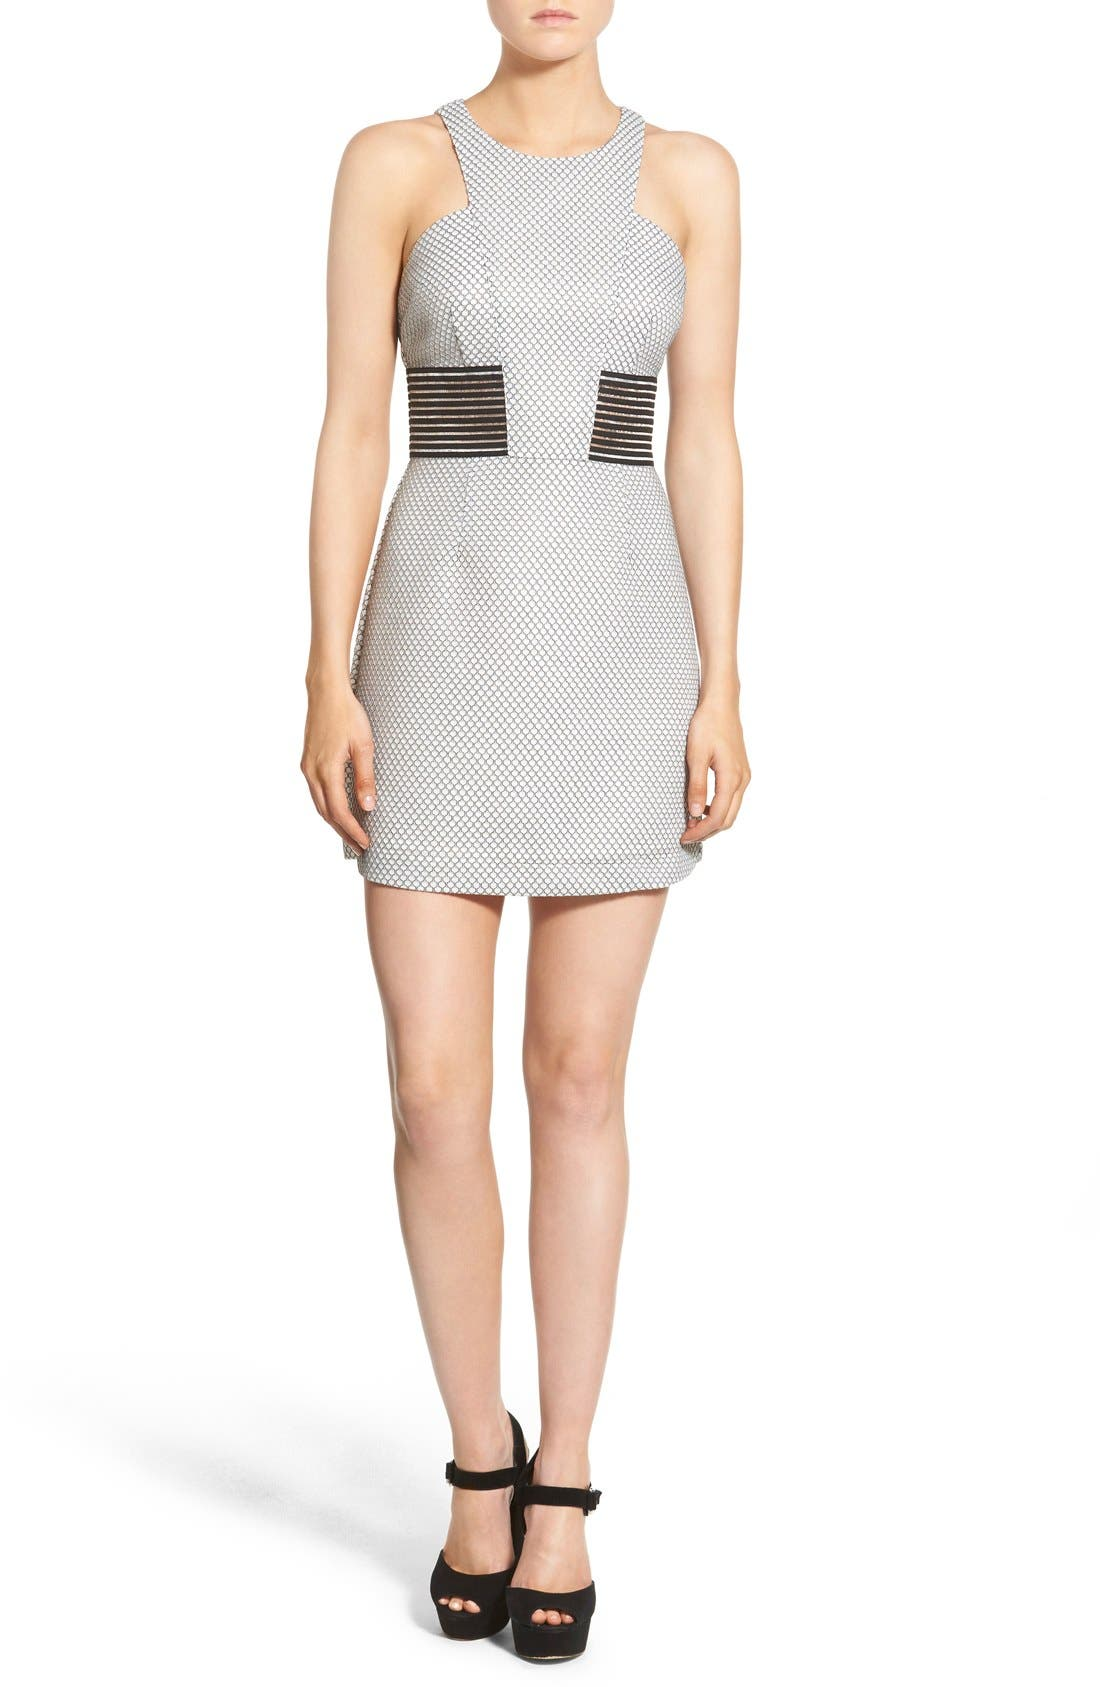 STOREE, Mesh Inset Body-Con Dress, Main thumbnail 1, color, 101